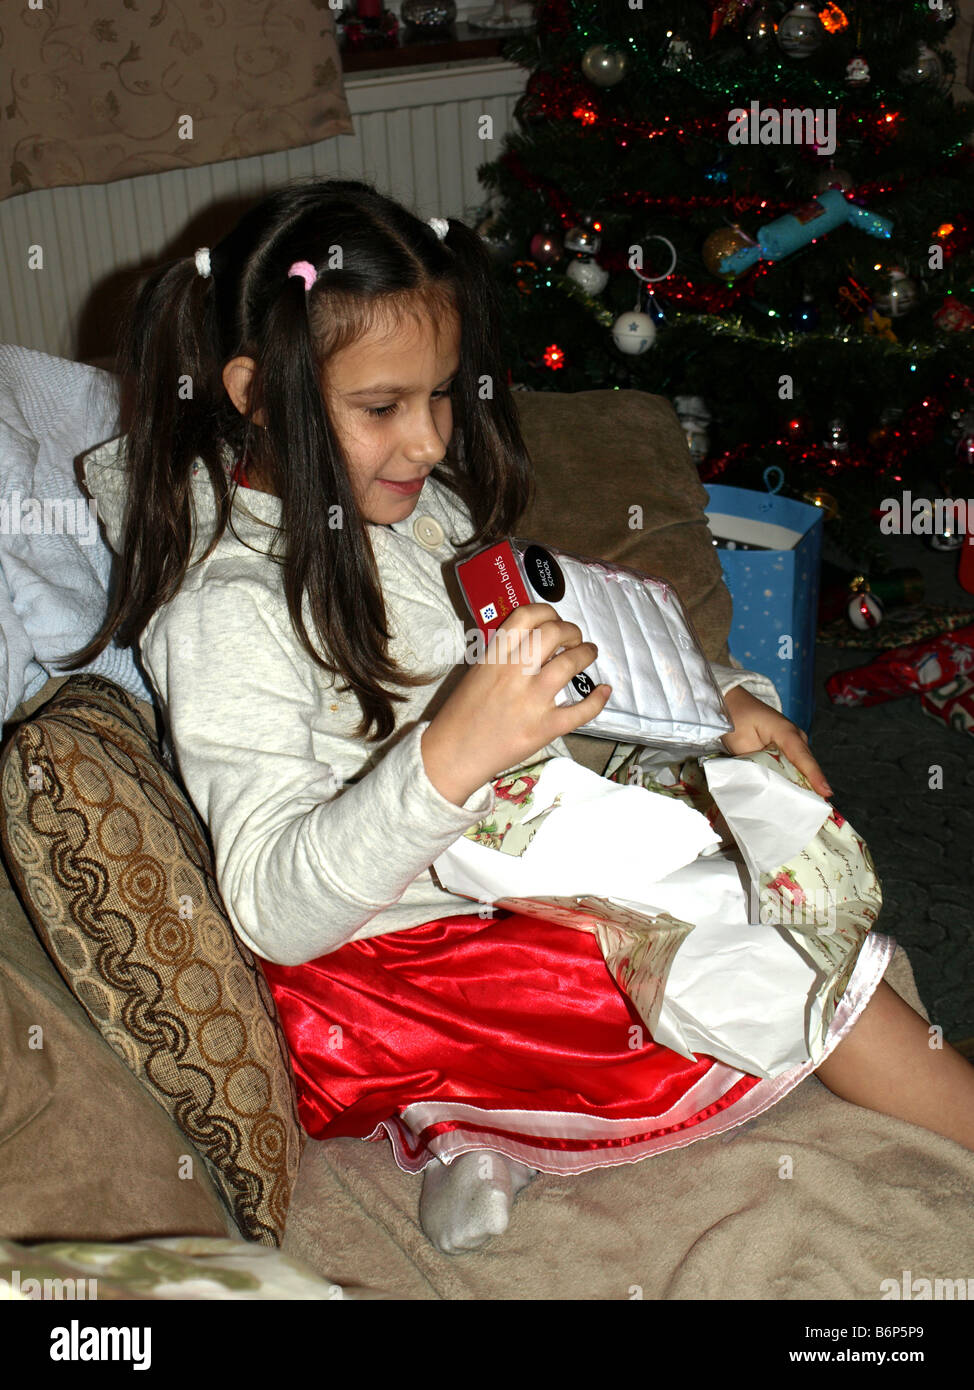 An 8 year old girl opening a Christmas present Stock Photo: 21385793 ...